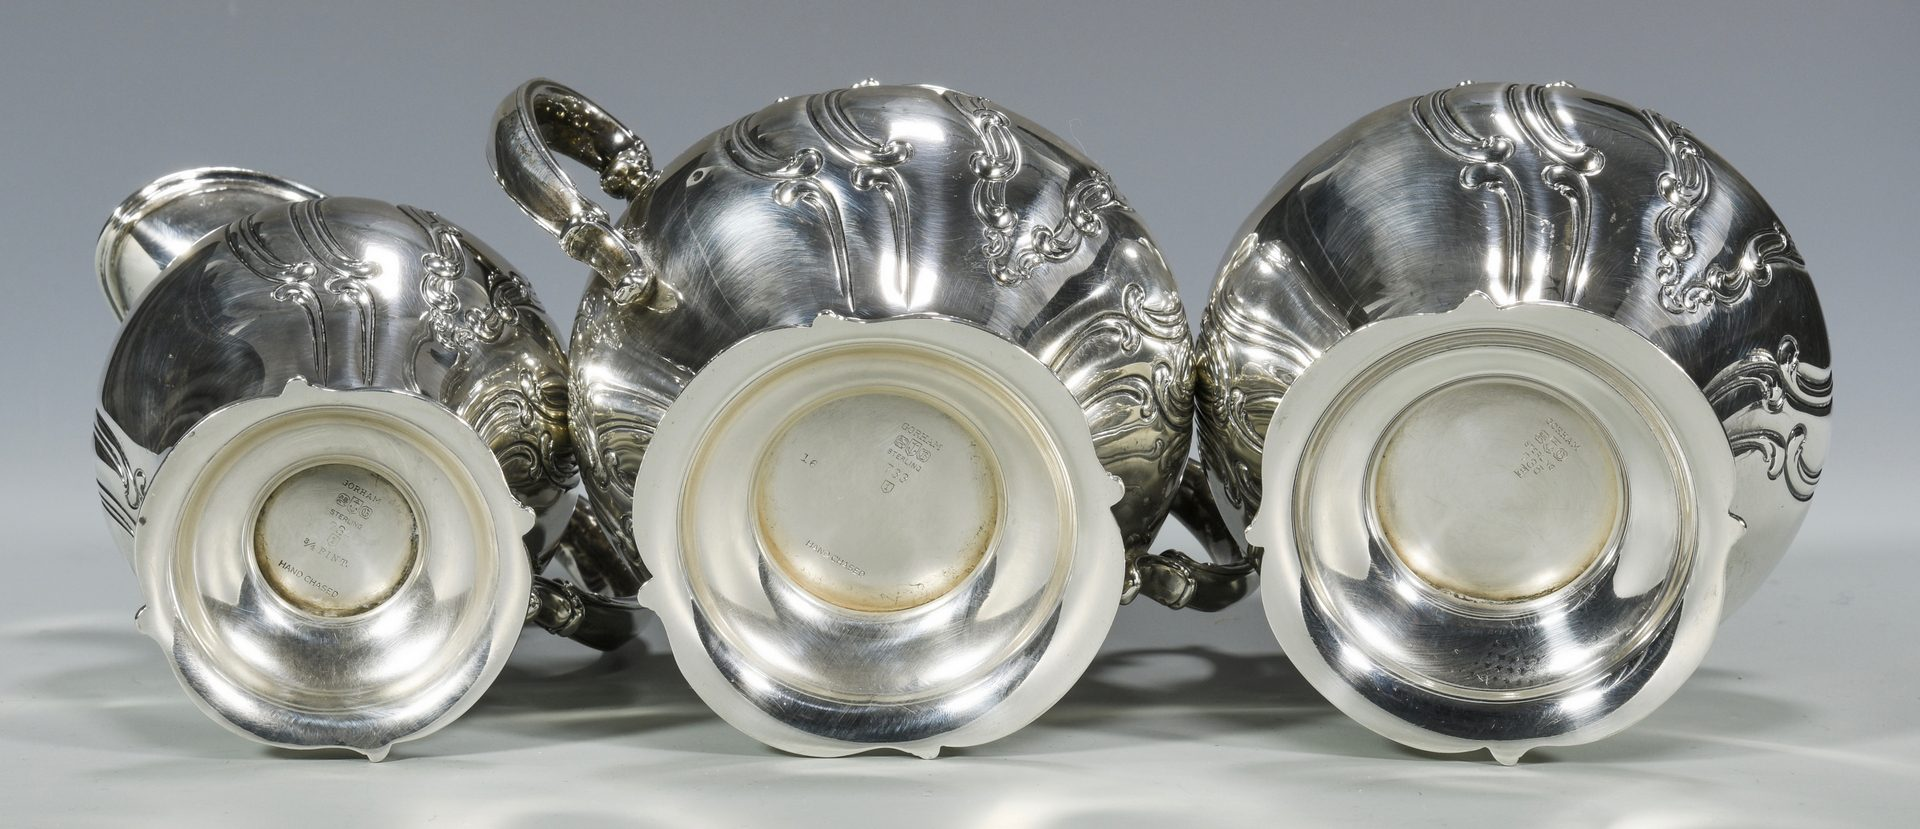 Lot 46: Gorham Chantilly Sterling Tray & Tea Set